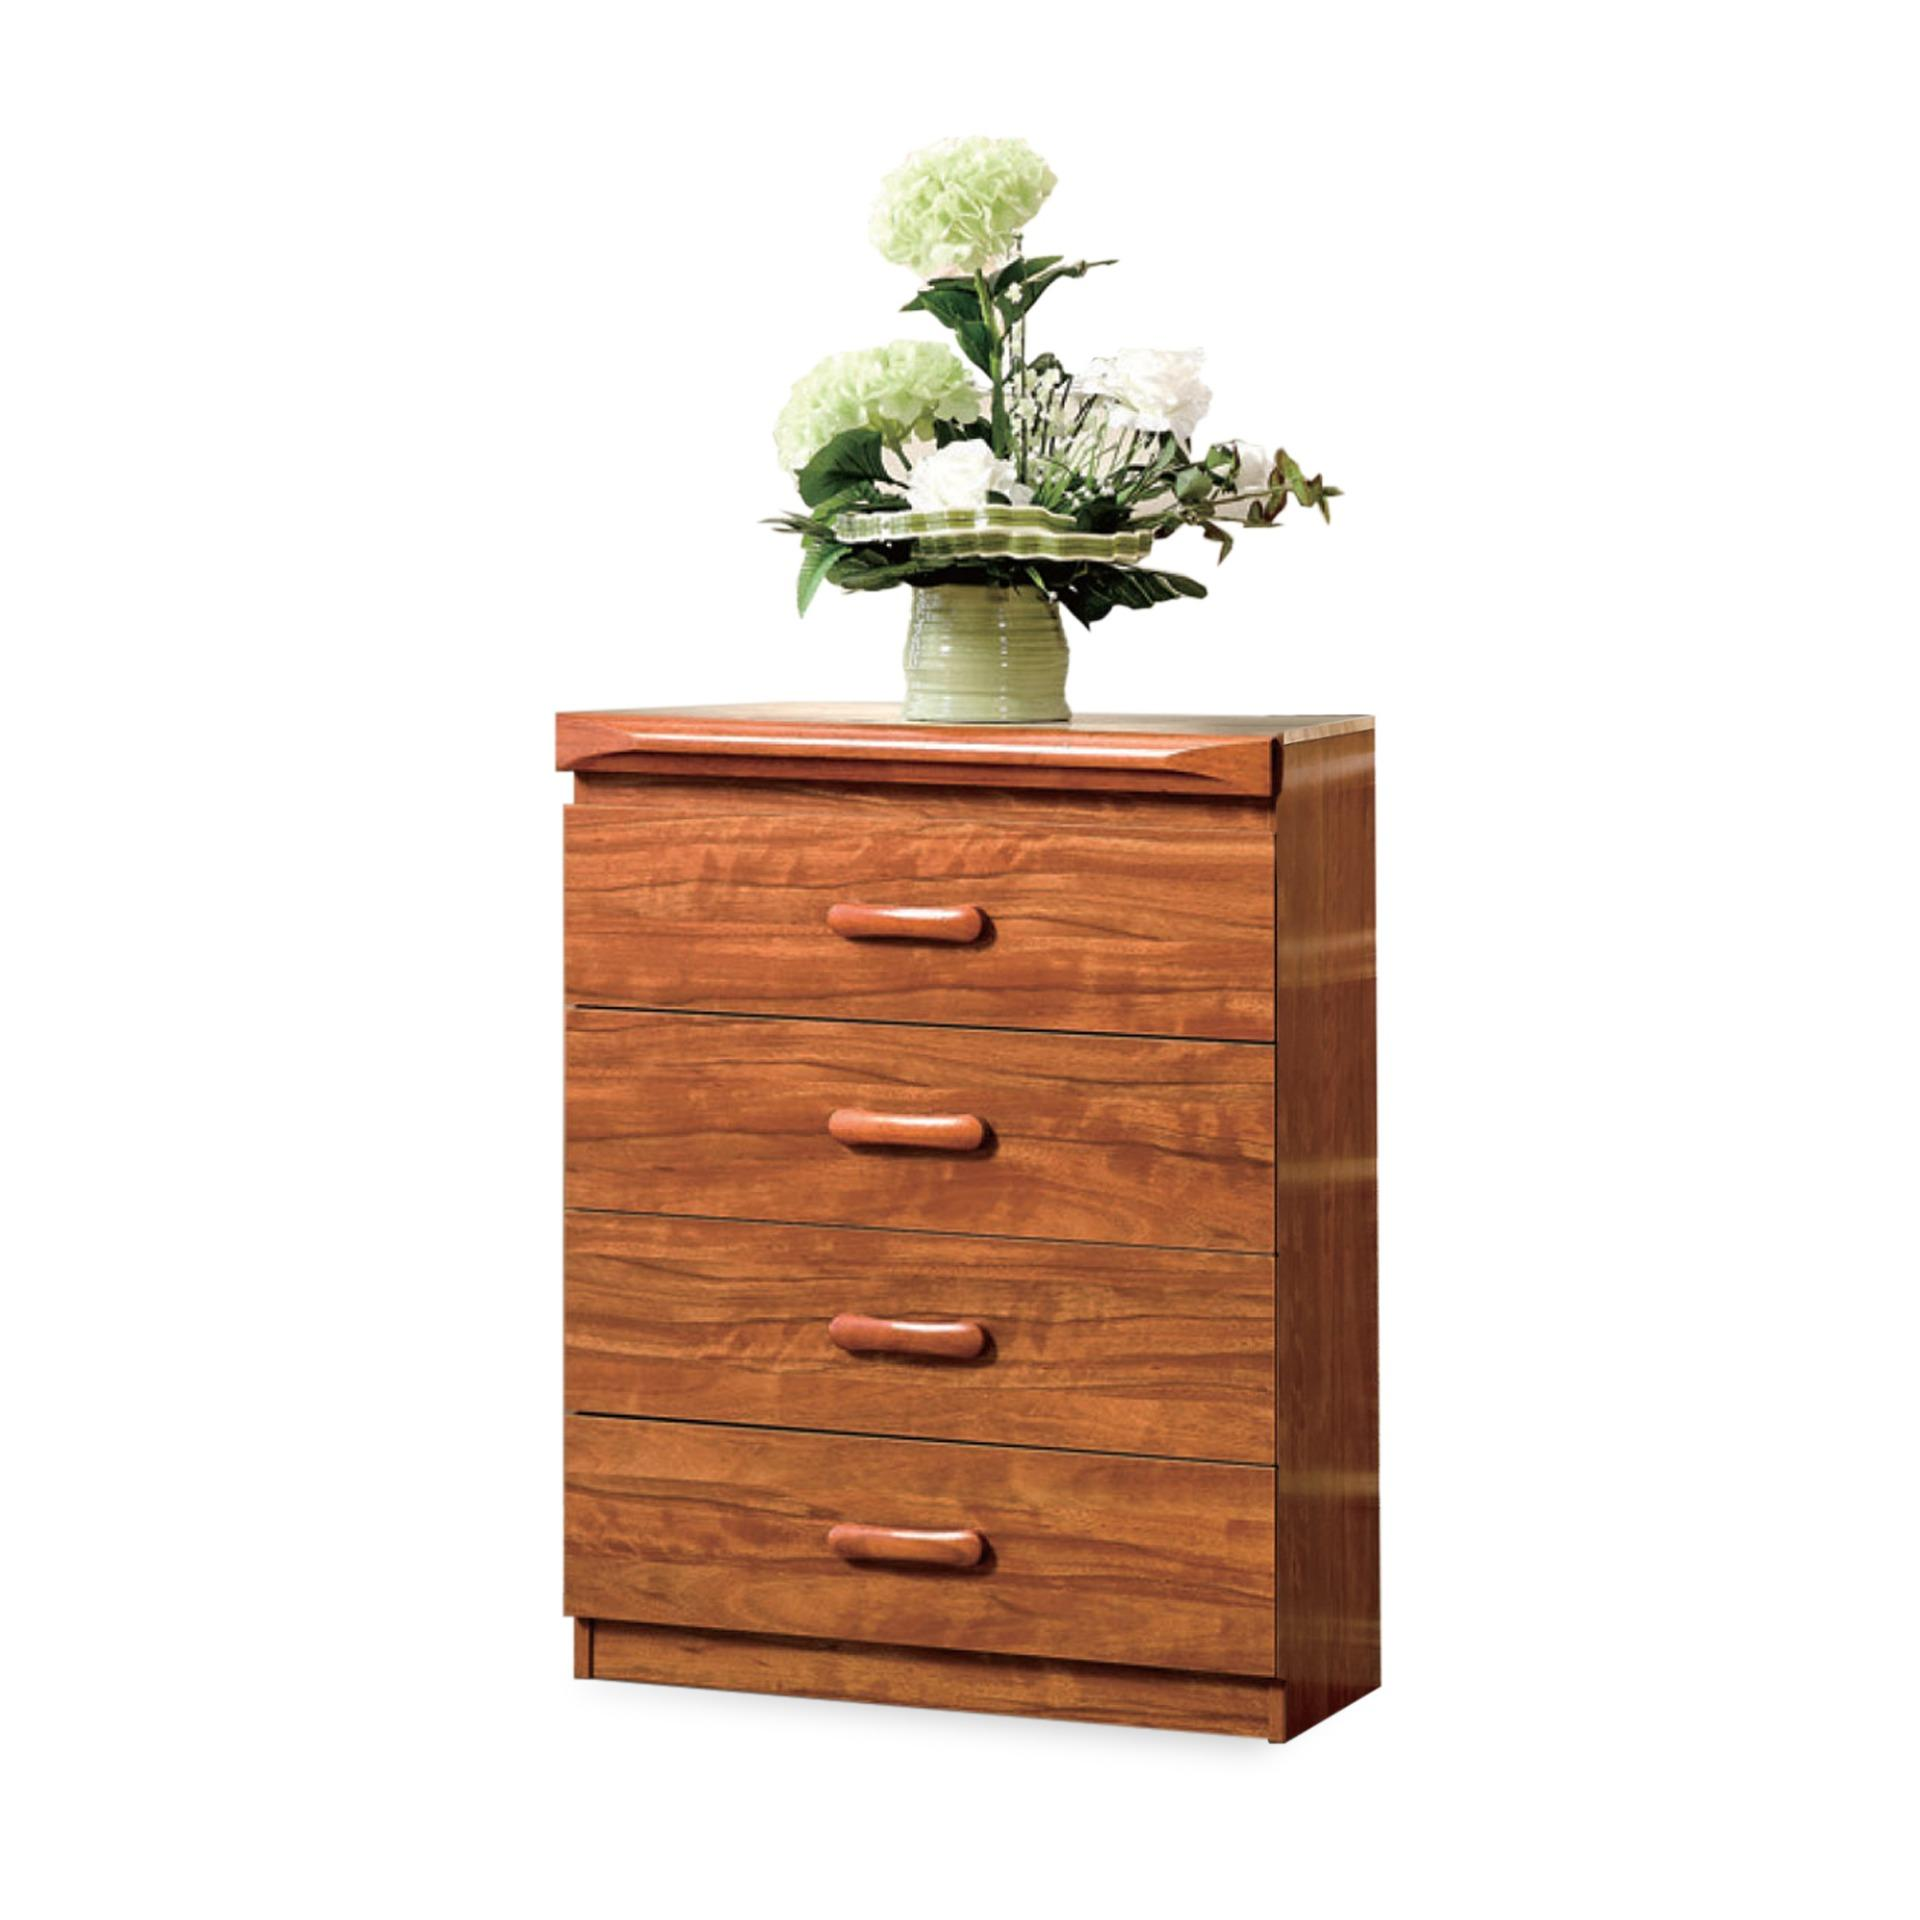 82e51bab4363 Modeste Chest Of 4 Drawers With Flip-Up Mirror (FREE DELIVERY)(FREE